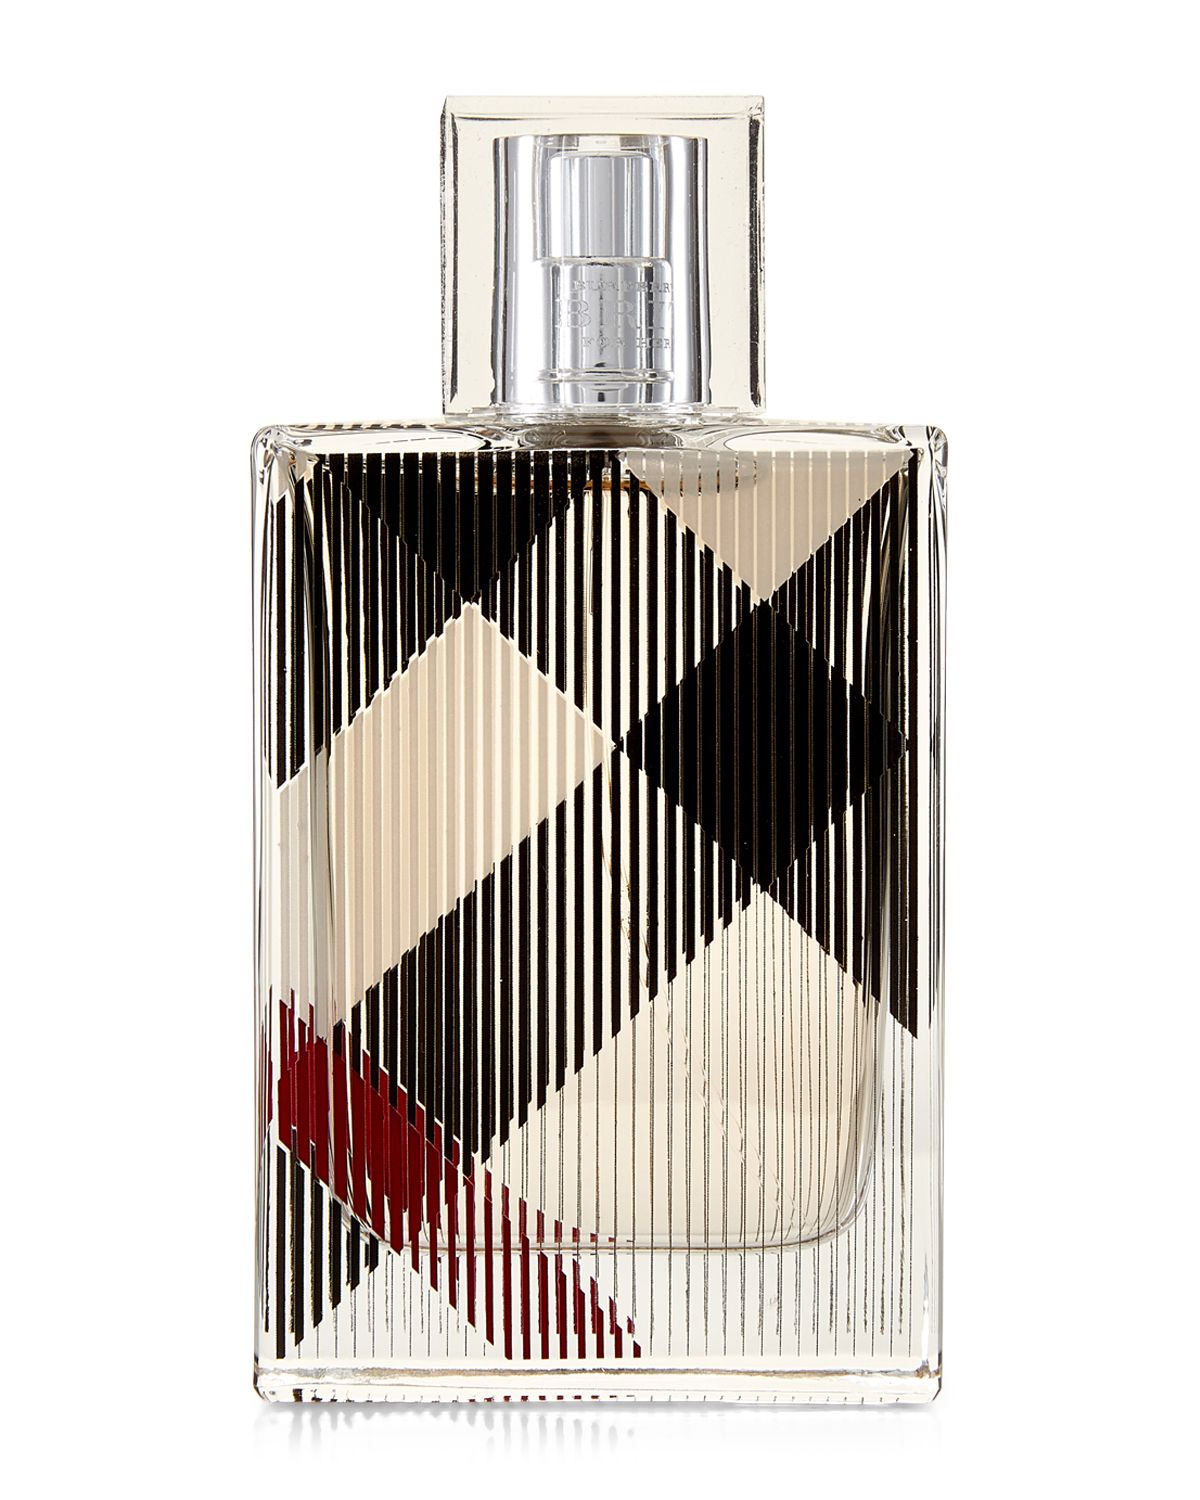 Burberry 21 For 1 6 2019century Her Parfum In OzSpray Eau De dQhosrCtxB